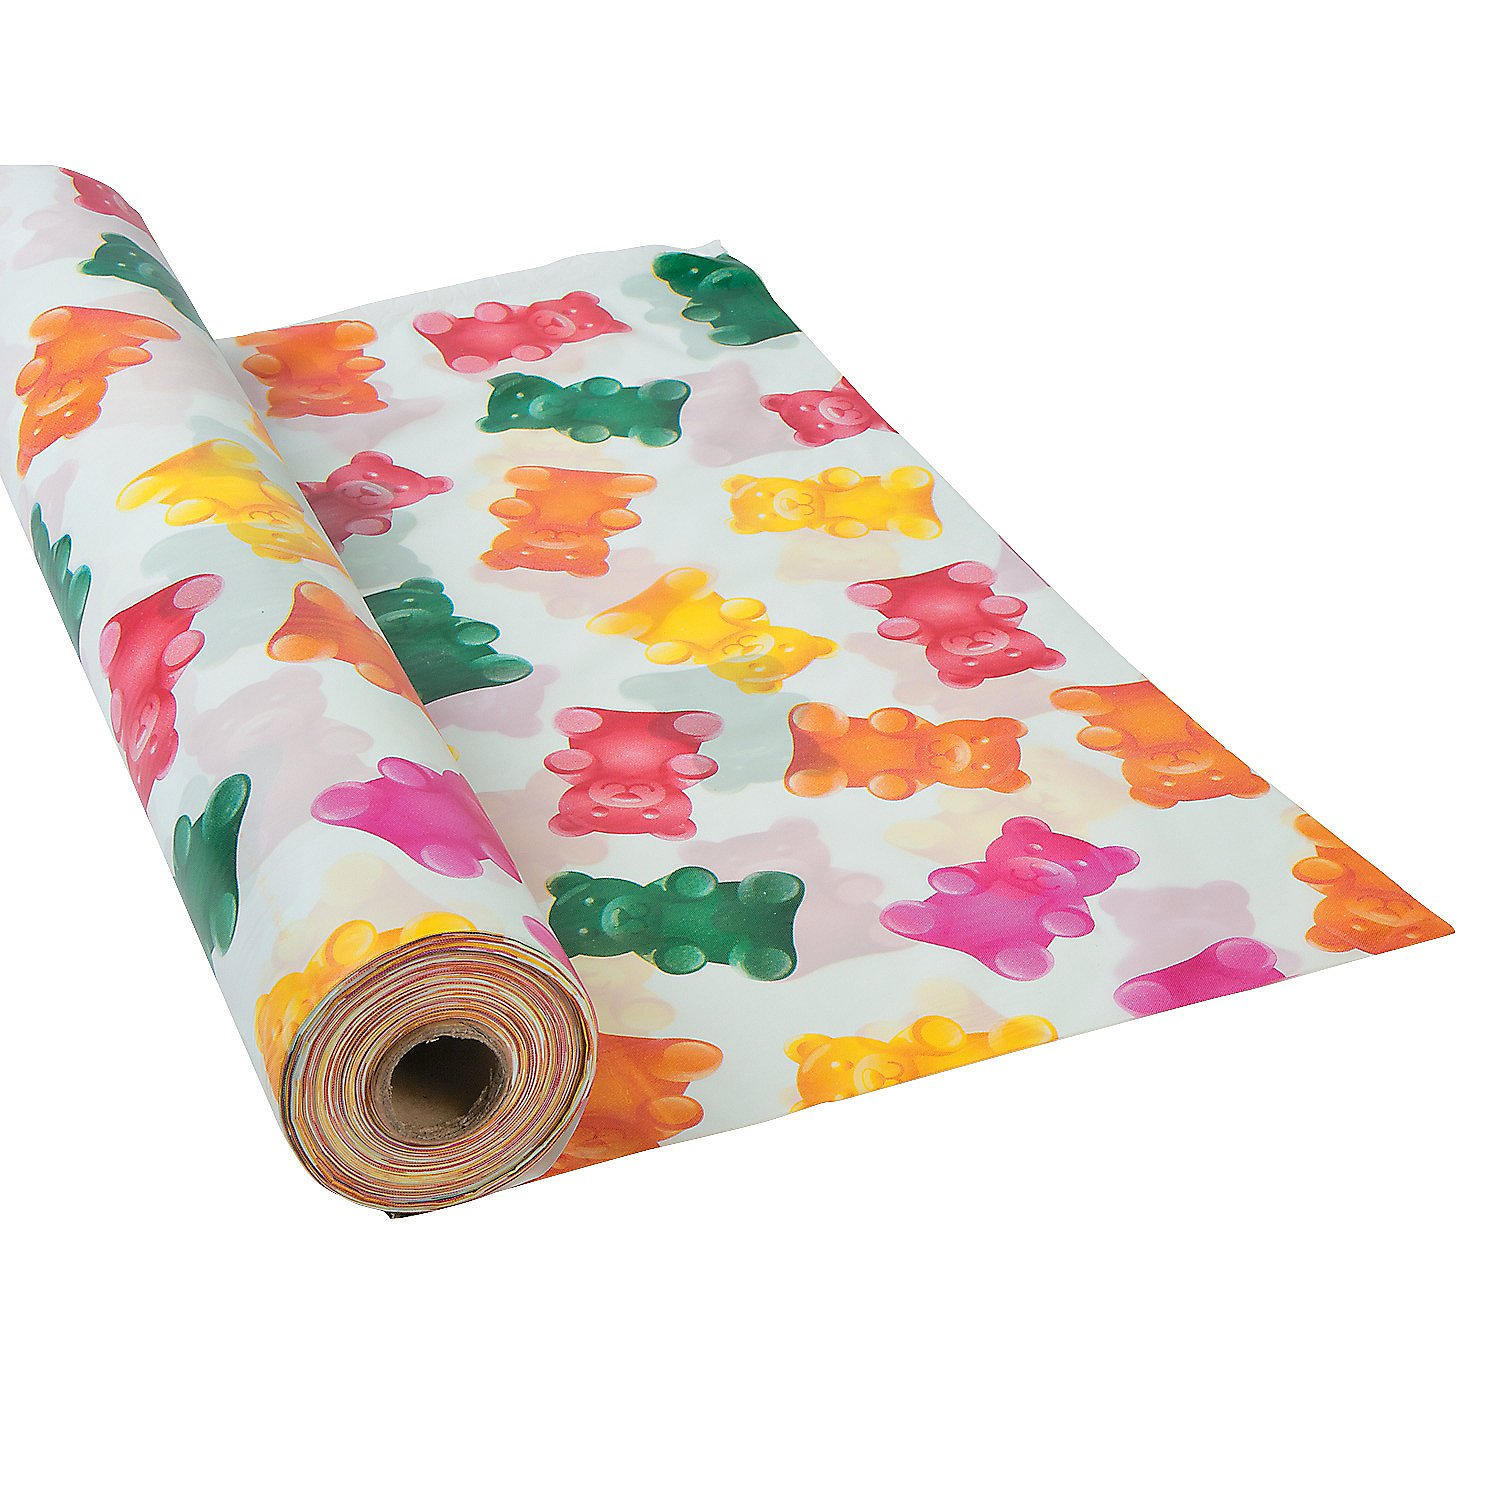 Fun Express - Gummy Bear Tablecloth Roll for Birthday - Party Supplies - Table Covers - Print Table Rolls - Birthday - 1 Piece